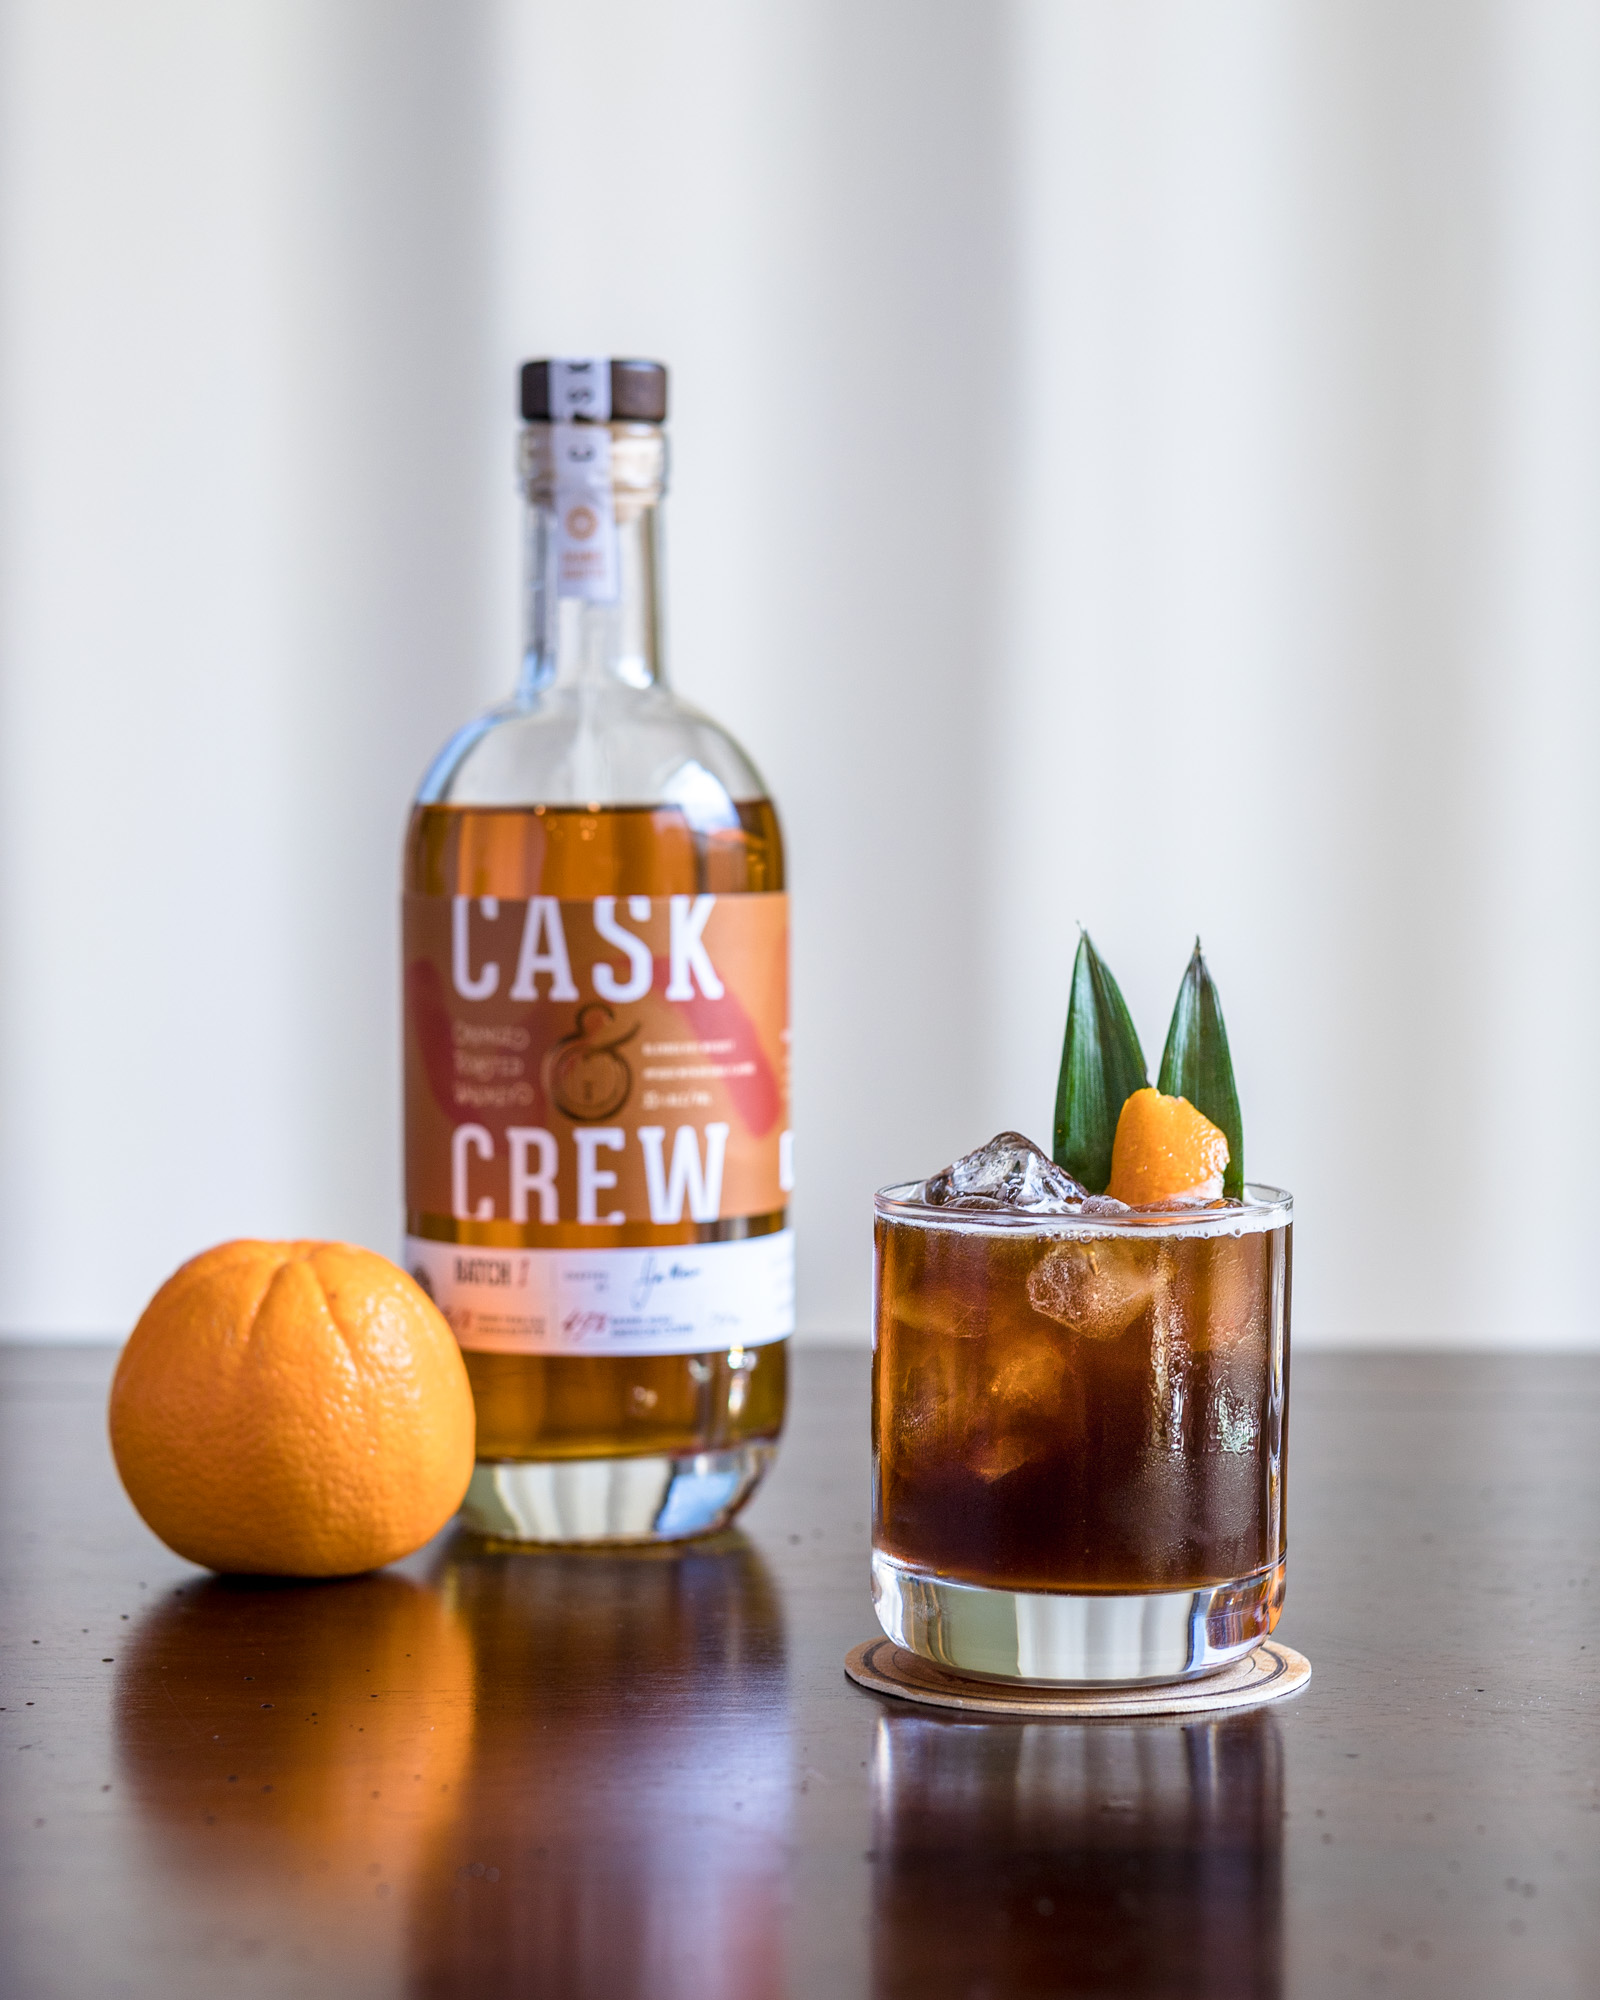 caskcrew_coffeecocktail.jpg